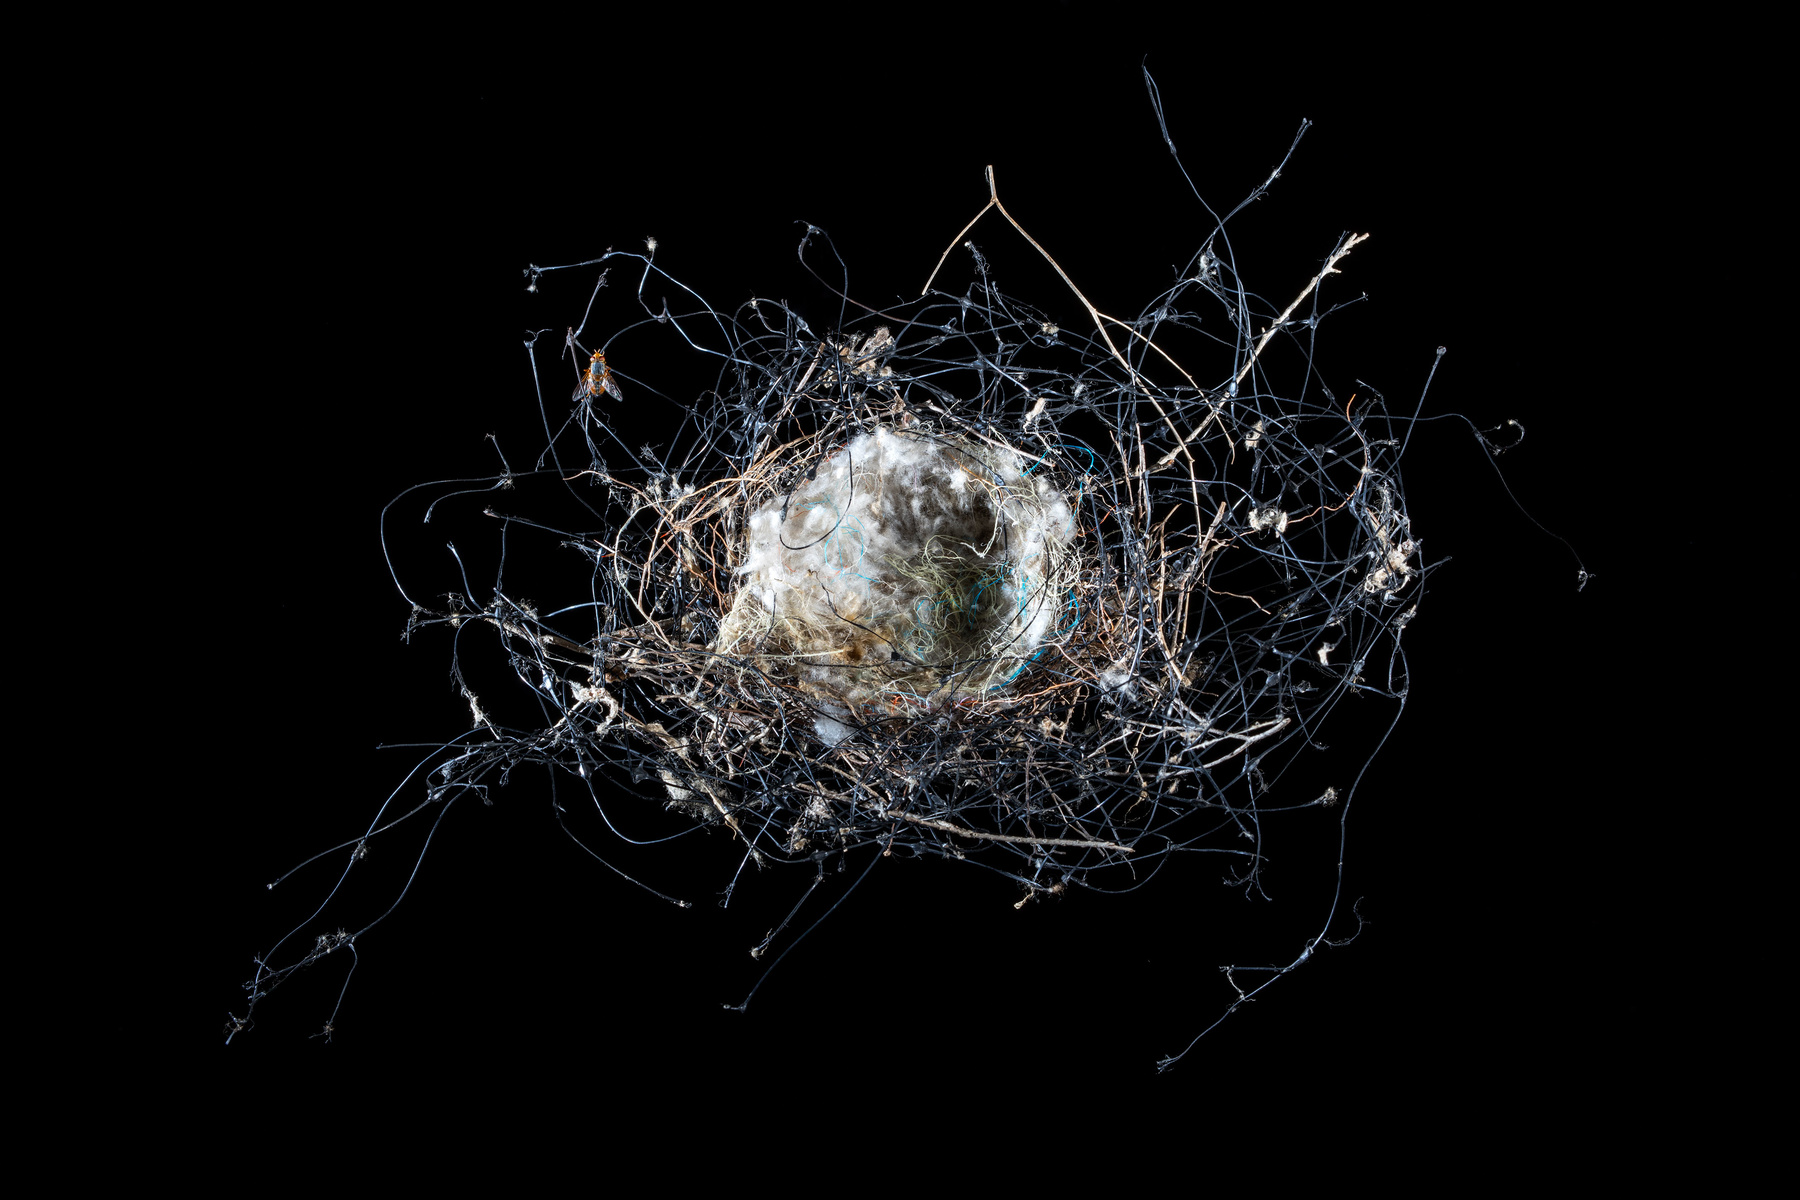 Found bird's nest of plastic netting and other unnatural fibres , 2016  Pigment print on platine fibre paper, 85x120cm